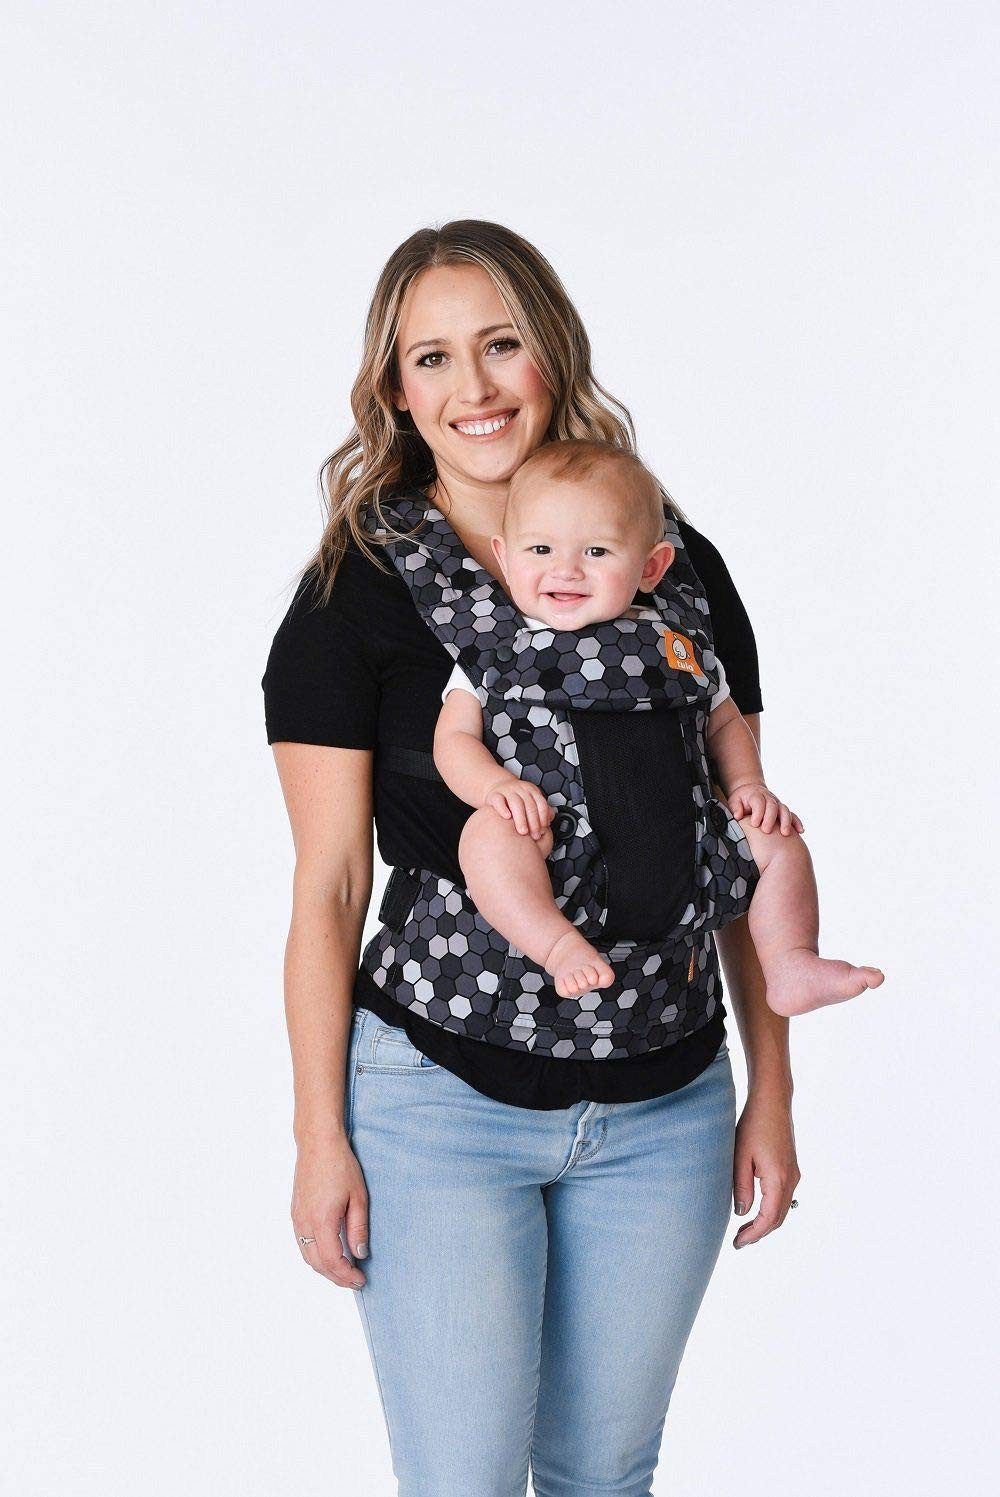 Tula Explore Baby Carrier Coast Buzz Tula Multiple porting positions, including front out. Baby carrier with an innovative main panel with an easy to adjust design in three width settings so that it can be used from 3.2 to 20.4 kg without the need for a baby cushion. The explore baby carrier has padded and adjustable neck support that can be used in multiple positions to provide head and neck support for newborn or sleeping babies 2